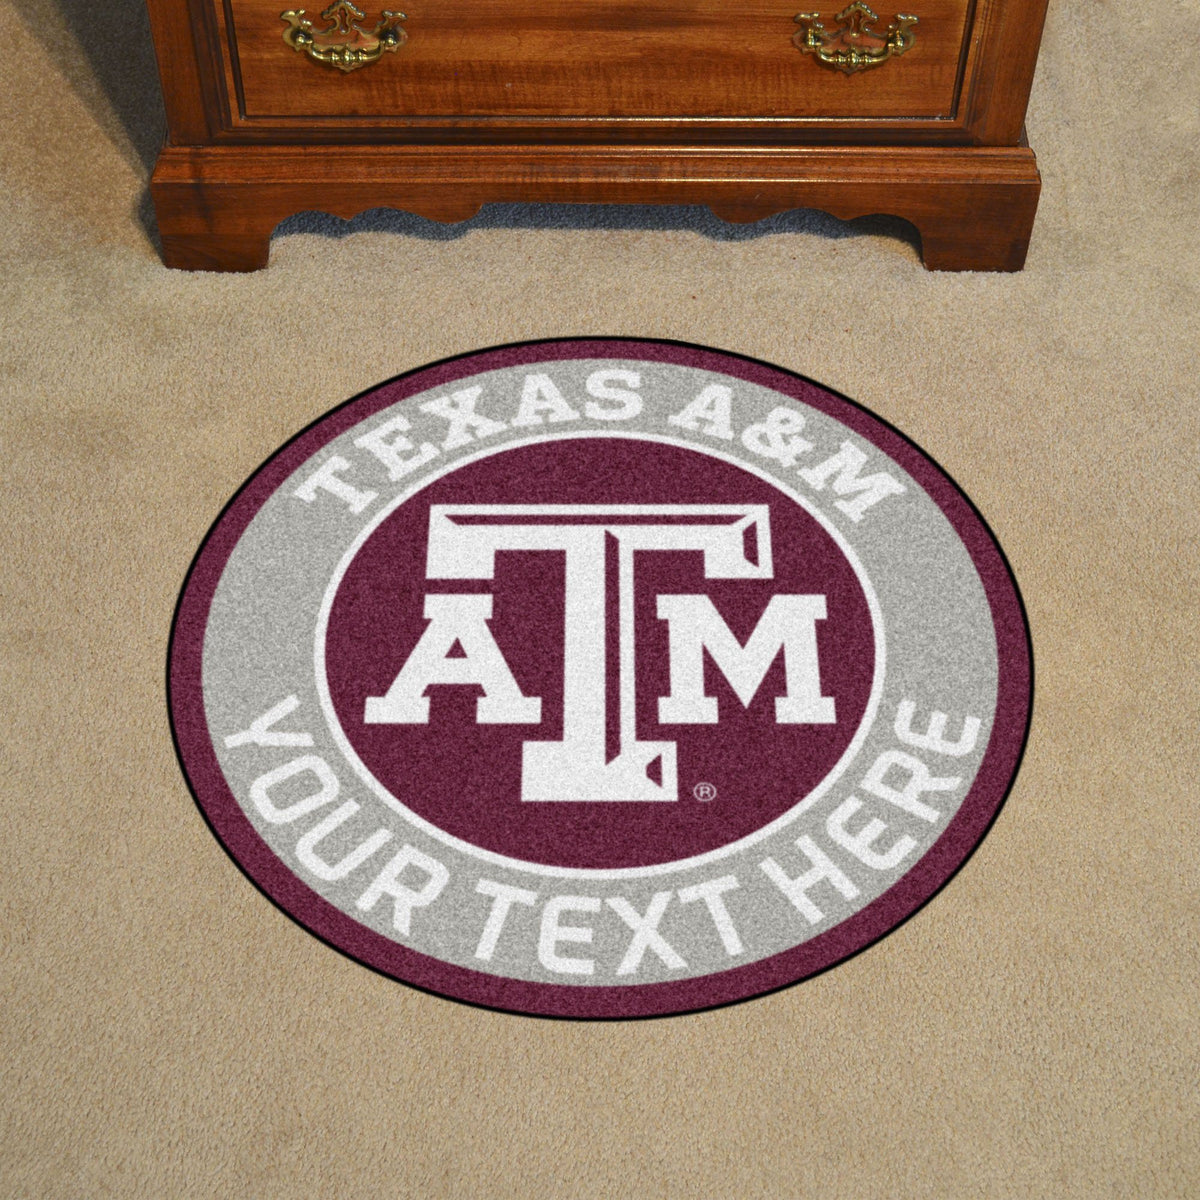 Collegiate Personalized Roundel Mat Personalized Roundel Mat Fan Mats Texas A&M University